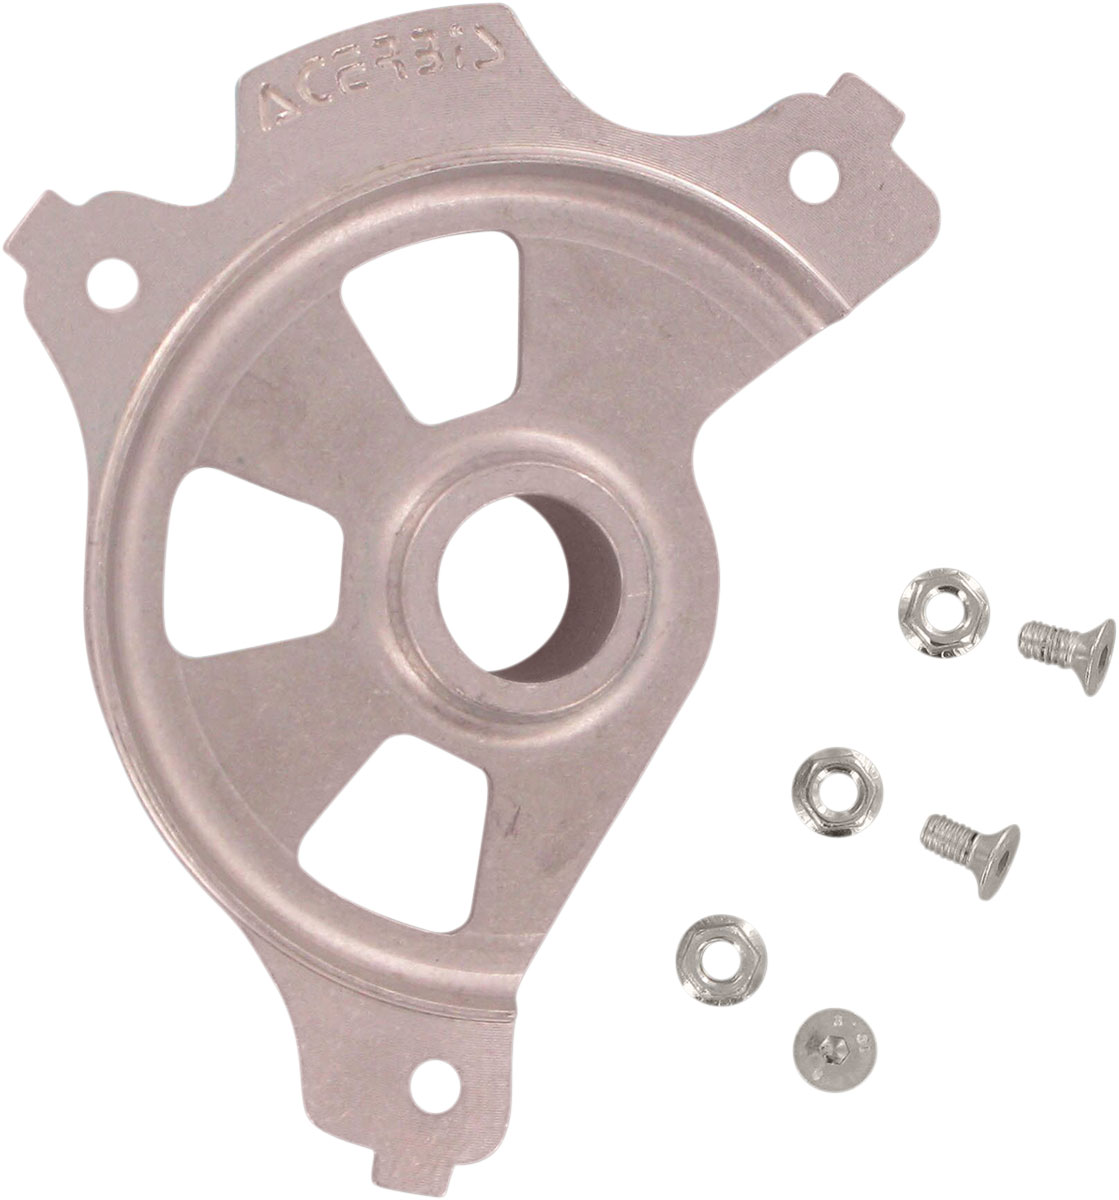 ACERBIS Mount Kit for X-Brake / Spider Evo Front Disc Covers (2403110059)